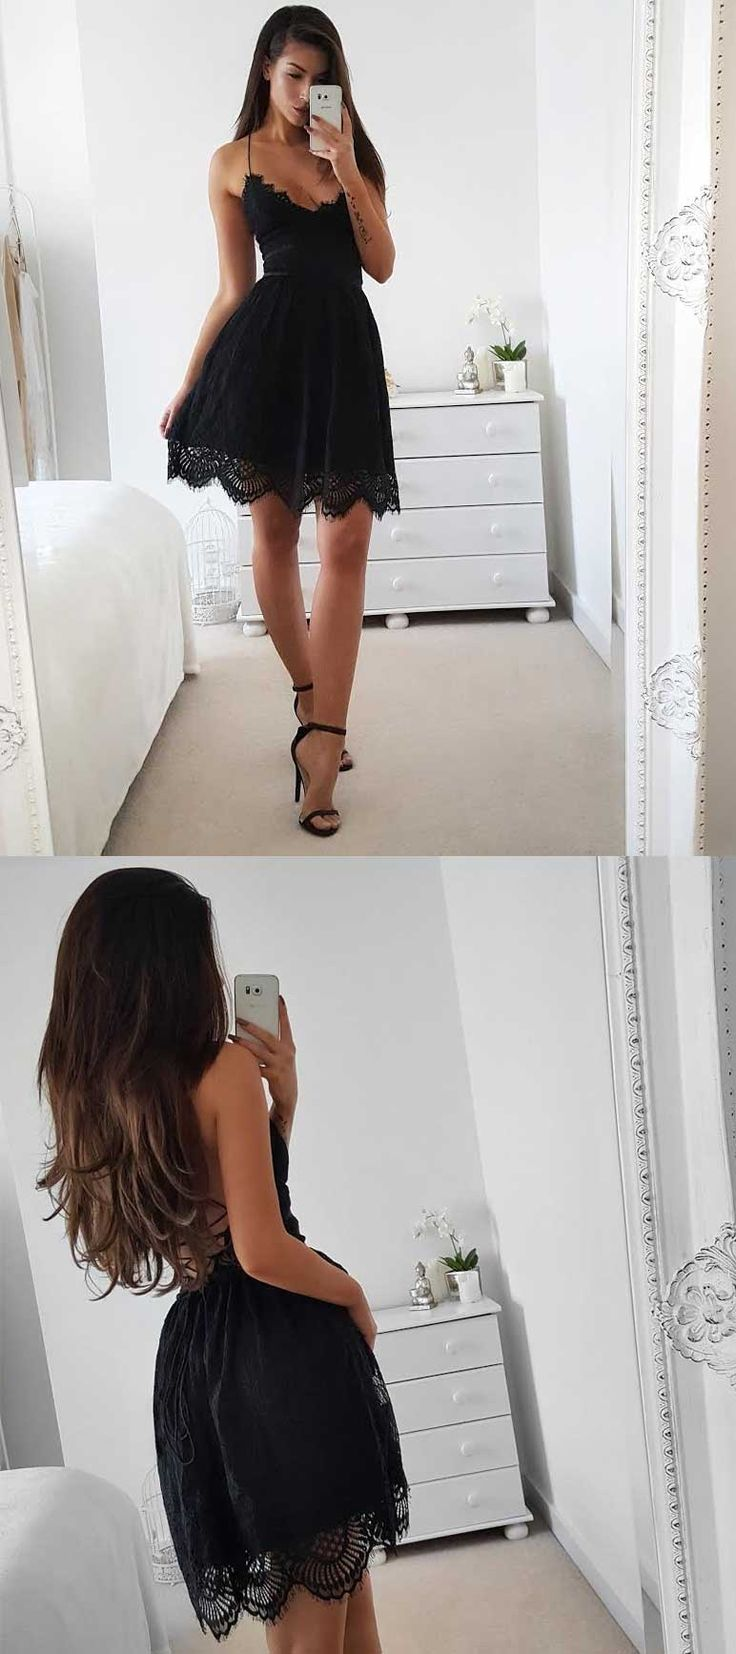 Spaghetti Straps Homecoming Dresses,backless homecoming dress,short black lace homecoming dress,sexy homecoming dresses,black casual dress ,little black dresses,short black prom dress under 100,simple homecoming dresses short,cheap homecoming dresses